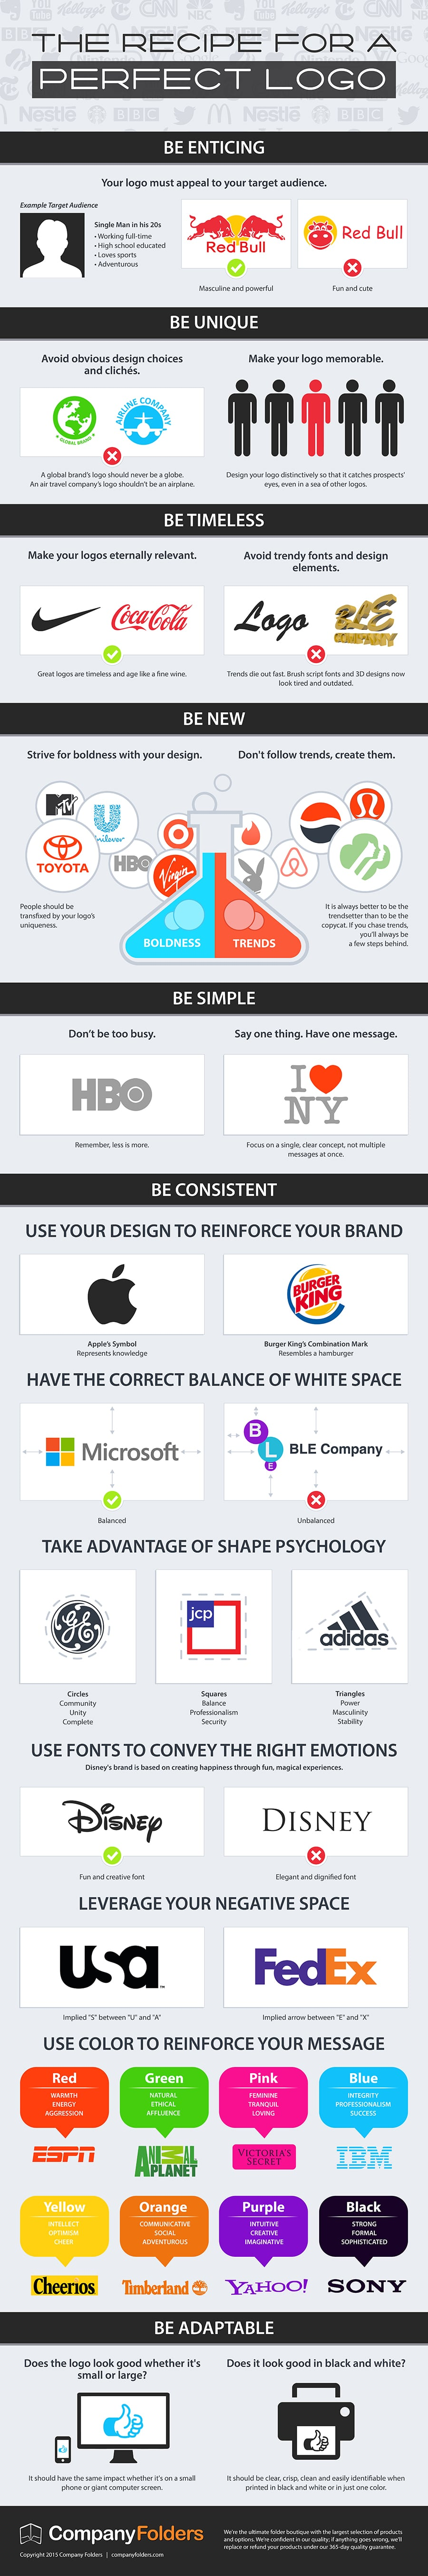 perfect logo design infographic